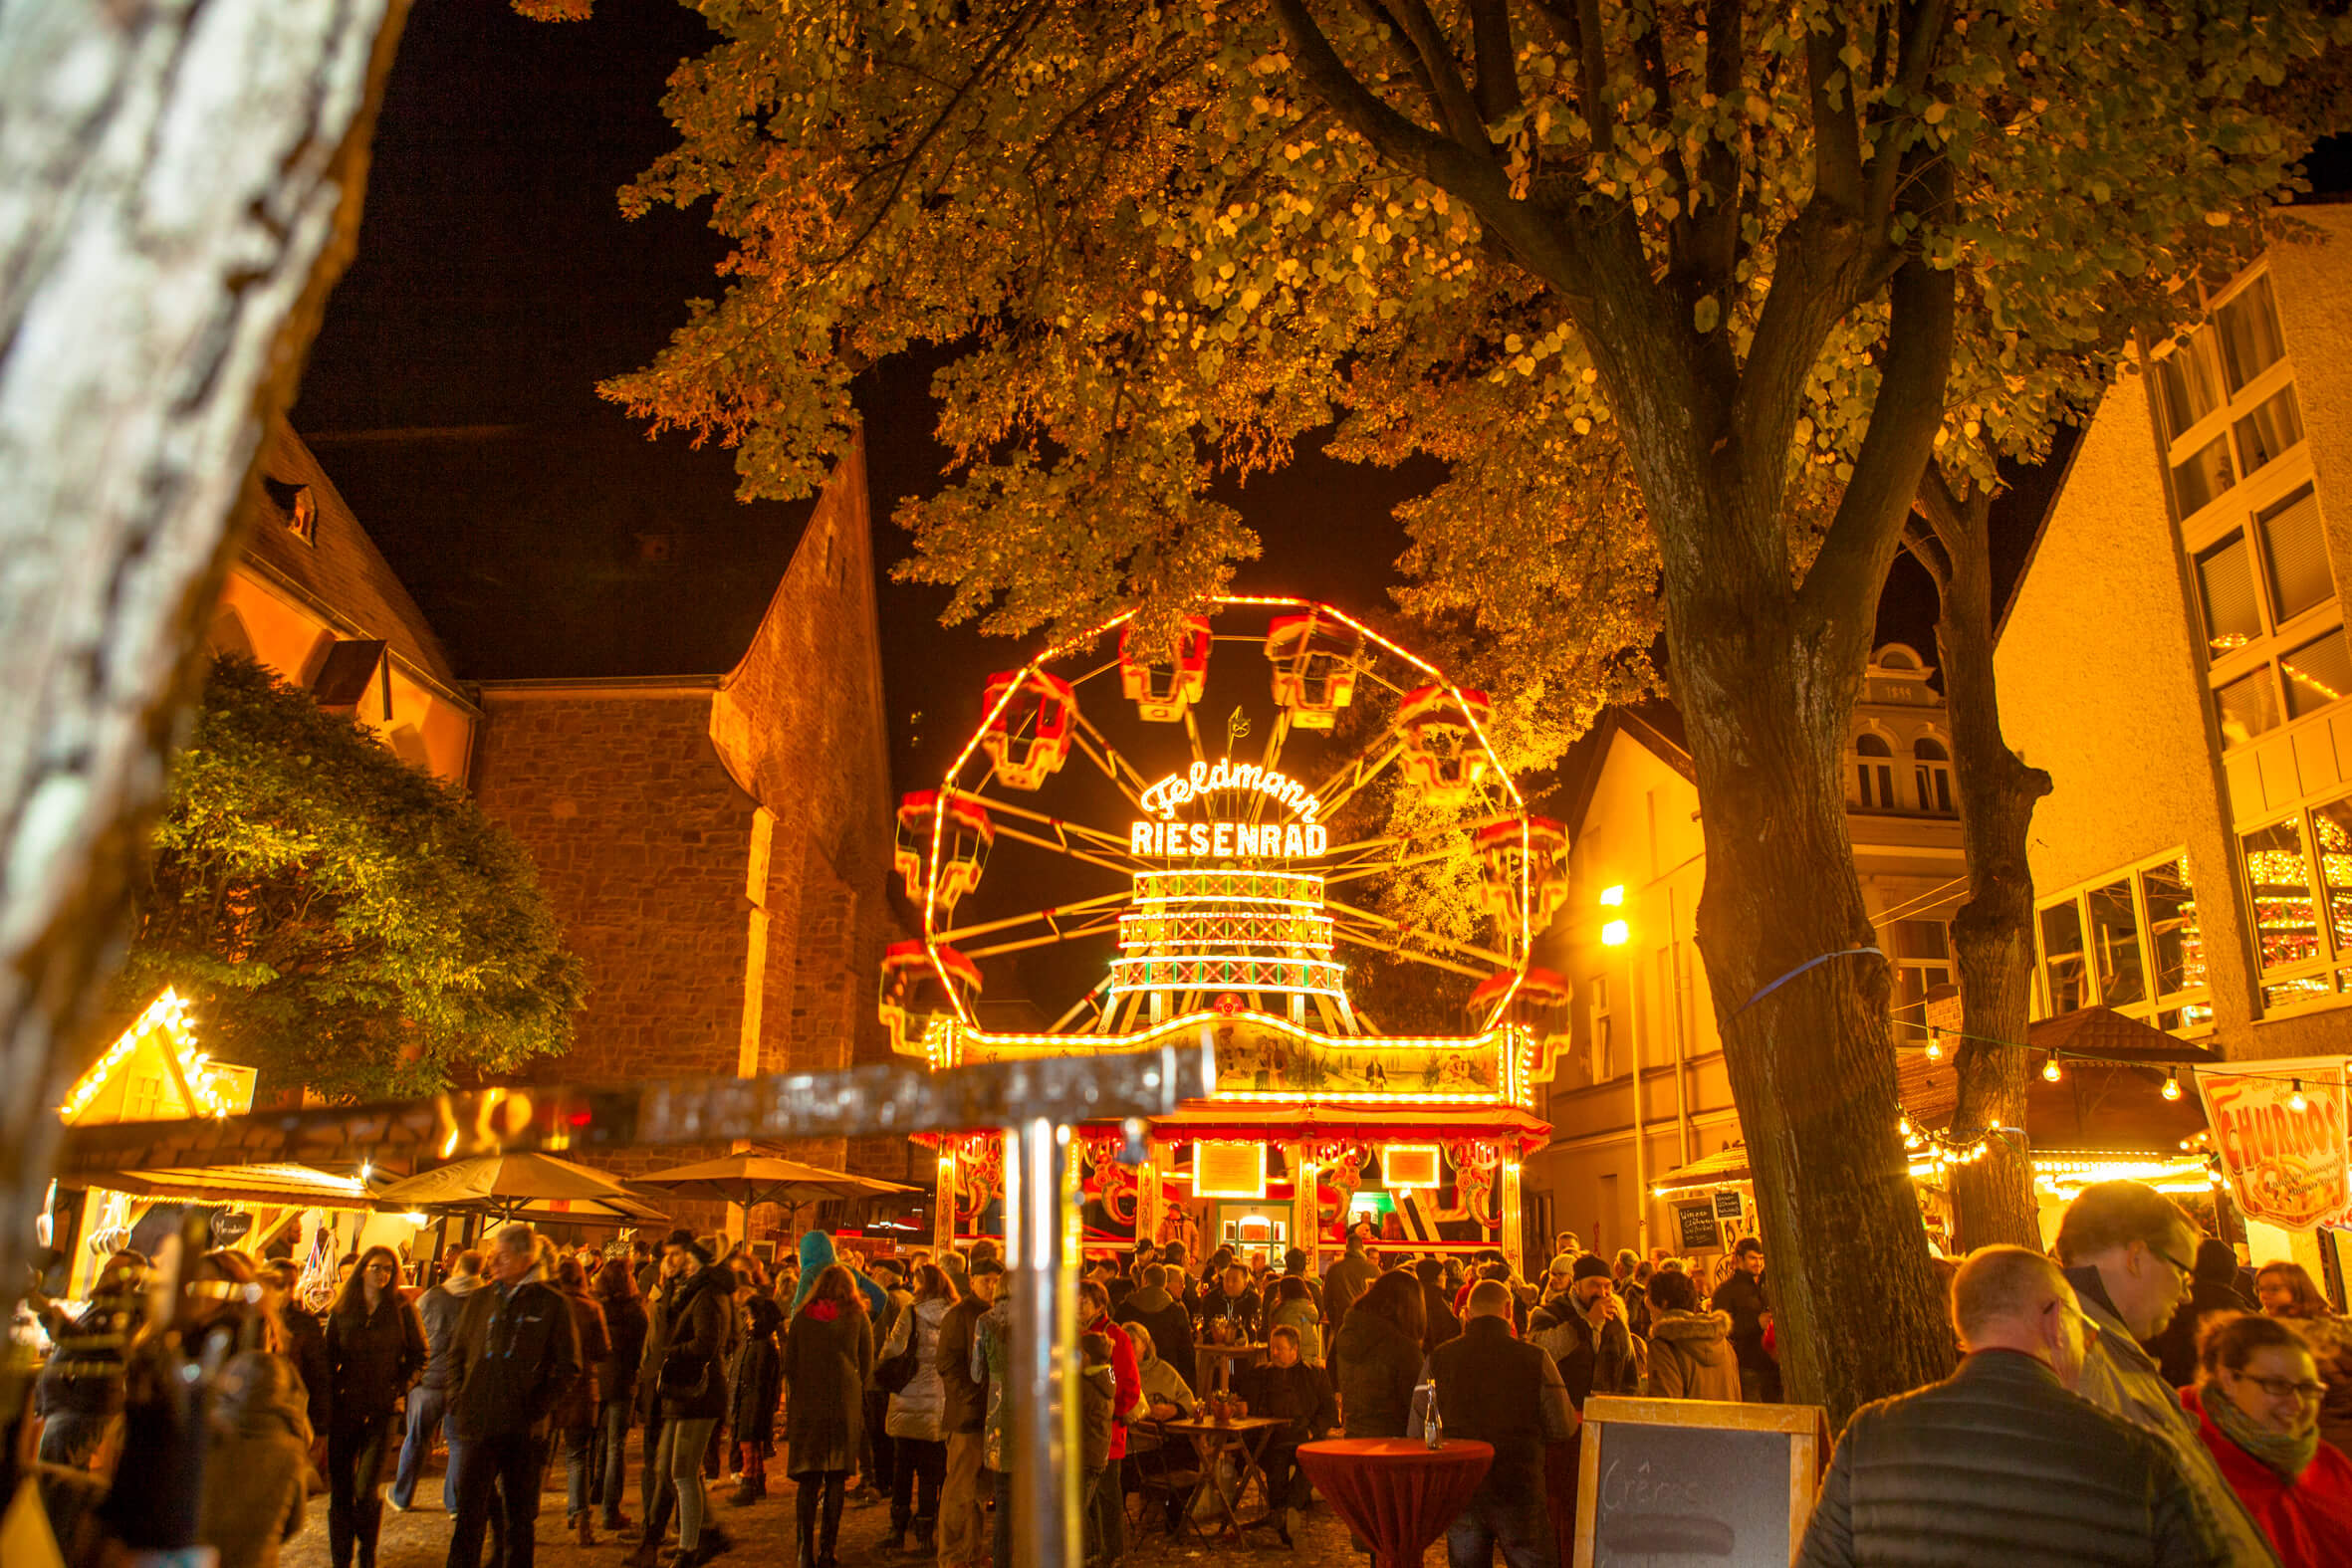 Veranstaltungstipp Martinimarkt in Bad Honnef 2019 stadtfest stadtevent city centrum e.V.